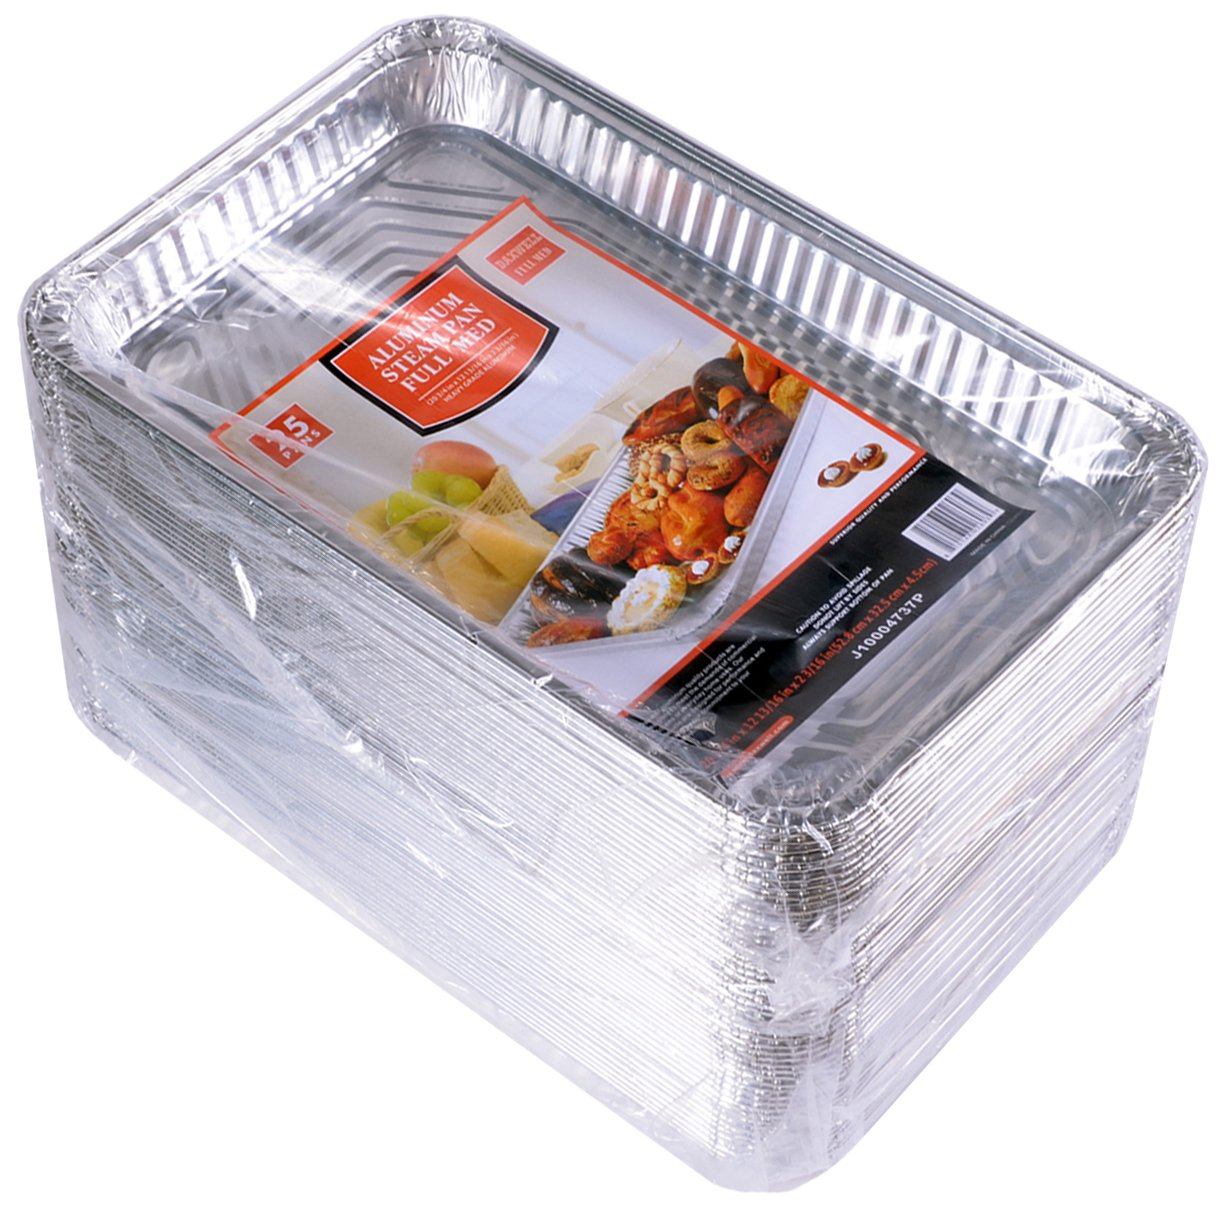 Daxwell Disposable Aluminum Steam Table Pan, Medium, Full Size (2 Packs of 25)